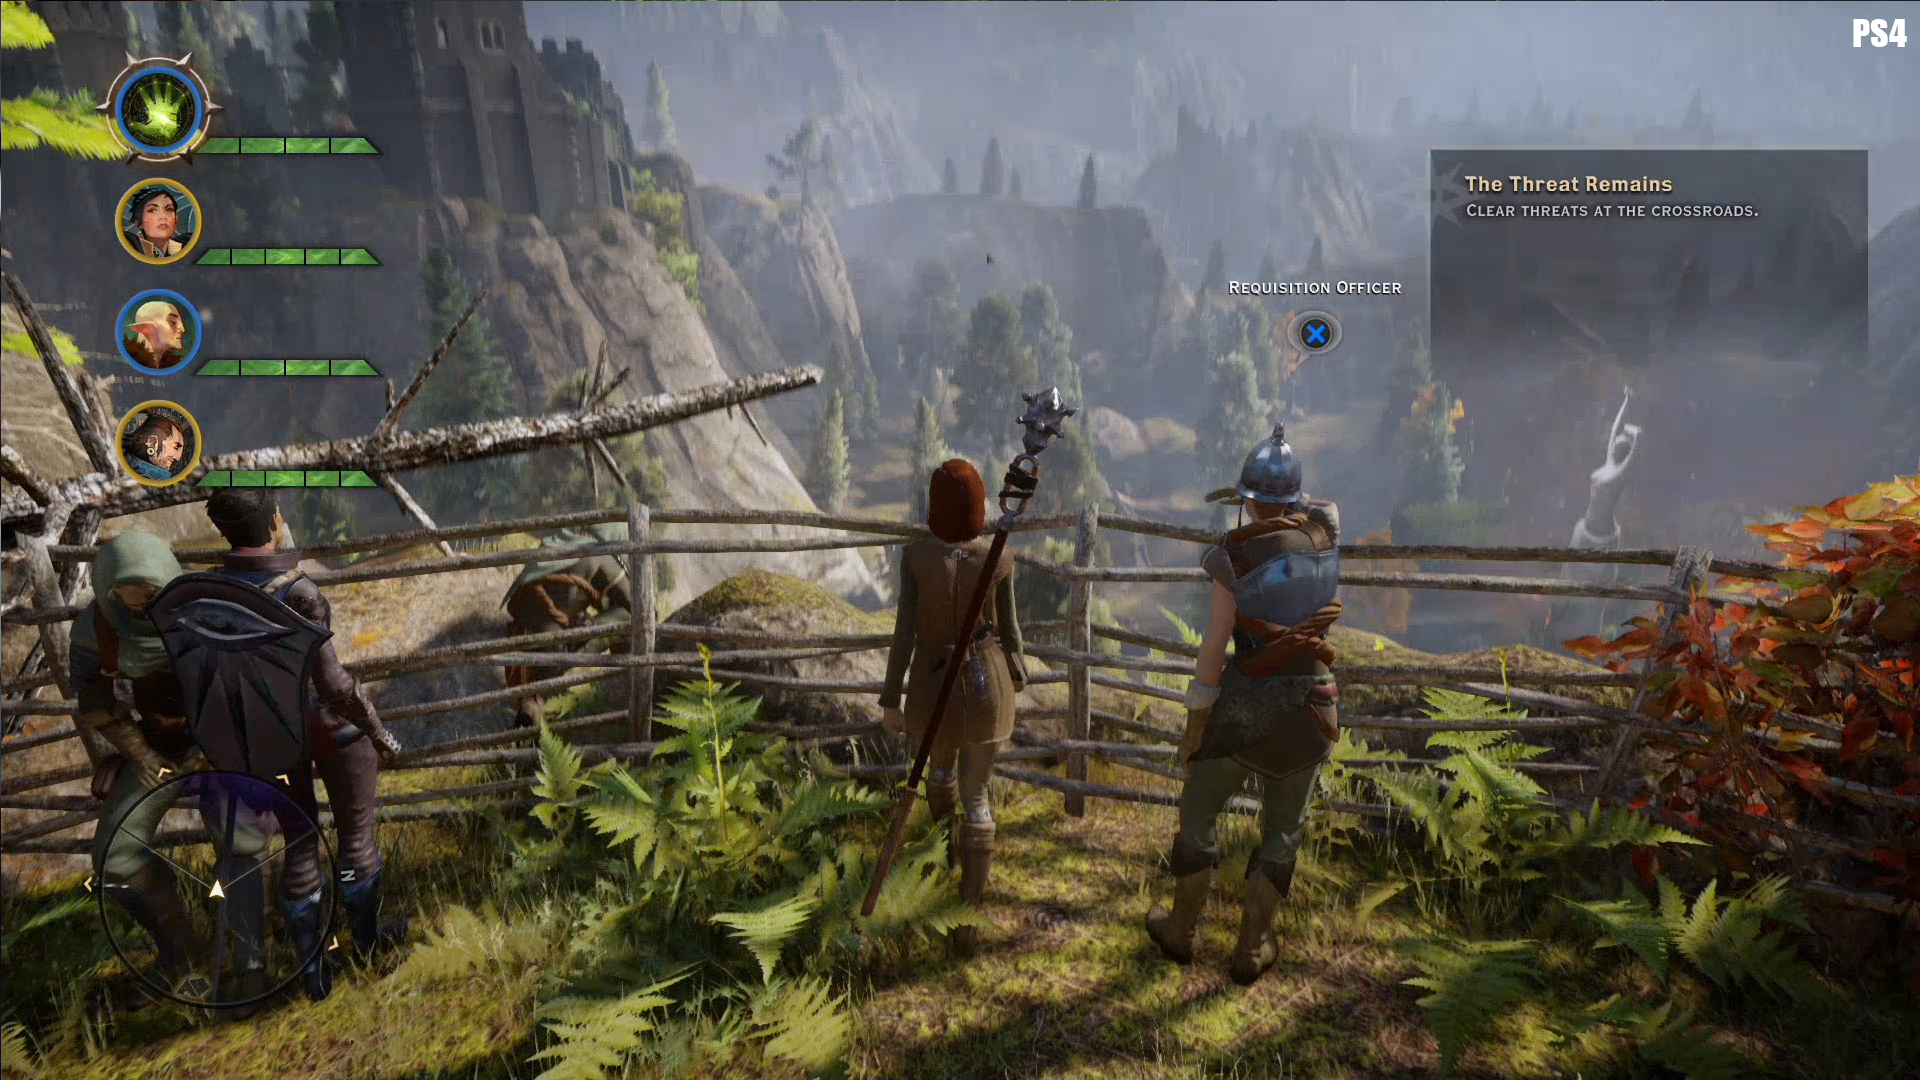 dragon age inquisition xbox one vs playstation 4 pc. Black Bedroom Furniture Sets. Home Design Ideas